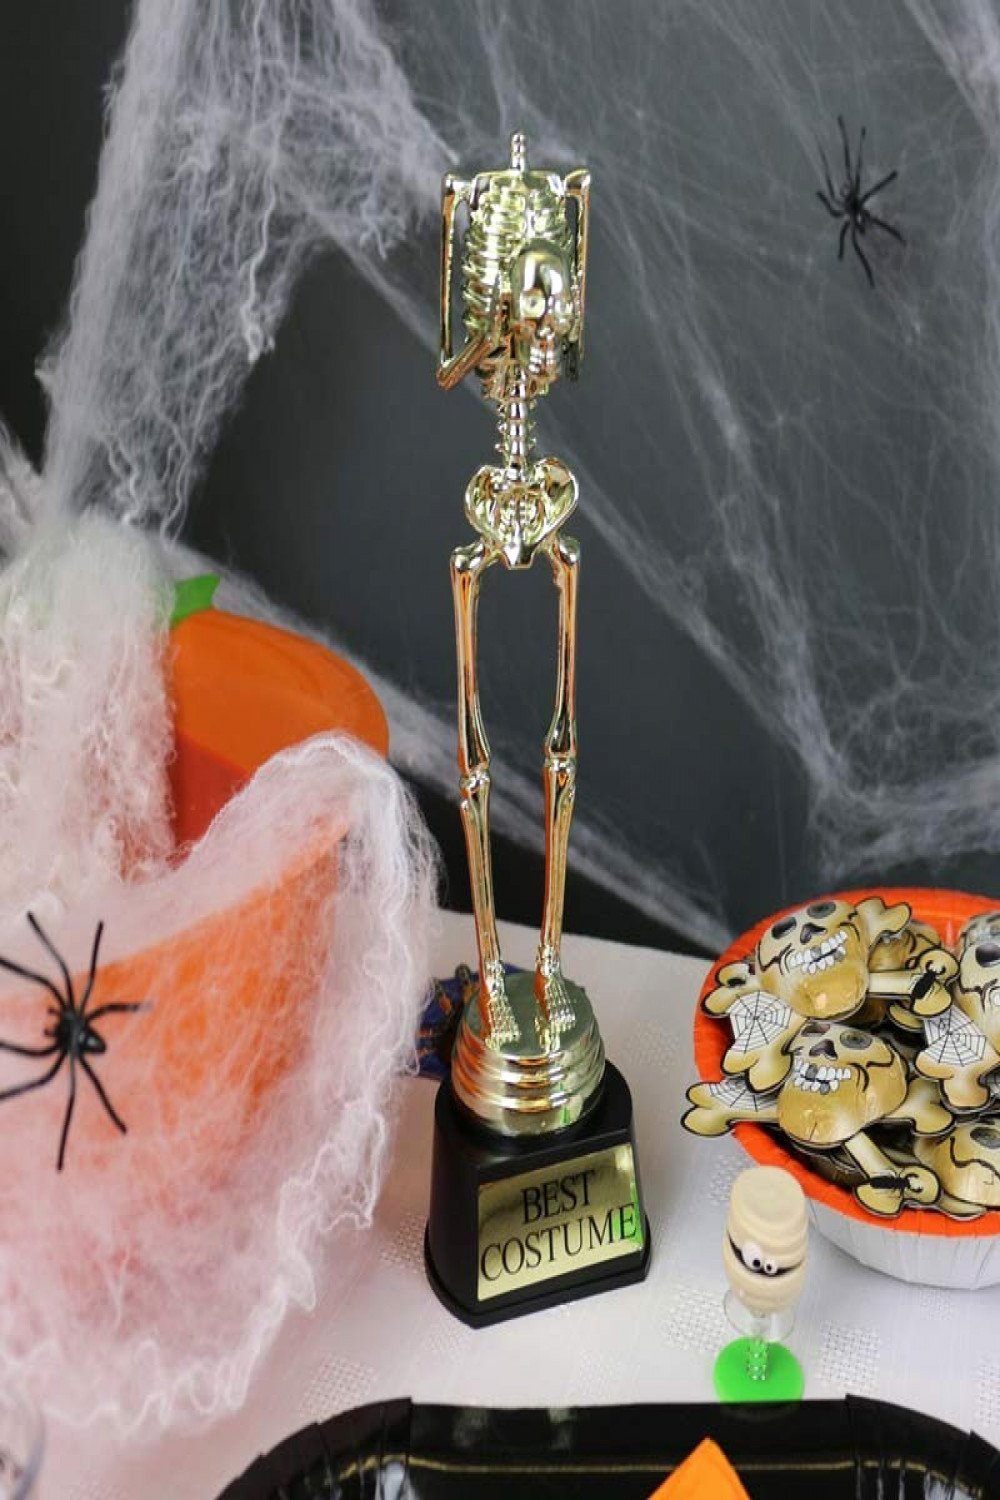 Best Costume Award Trophy New Halloween Trophies and Awards Best Costume Trophy